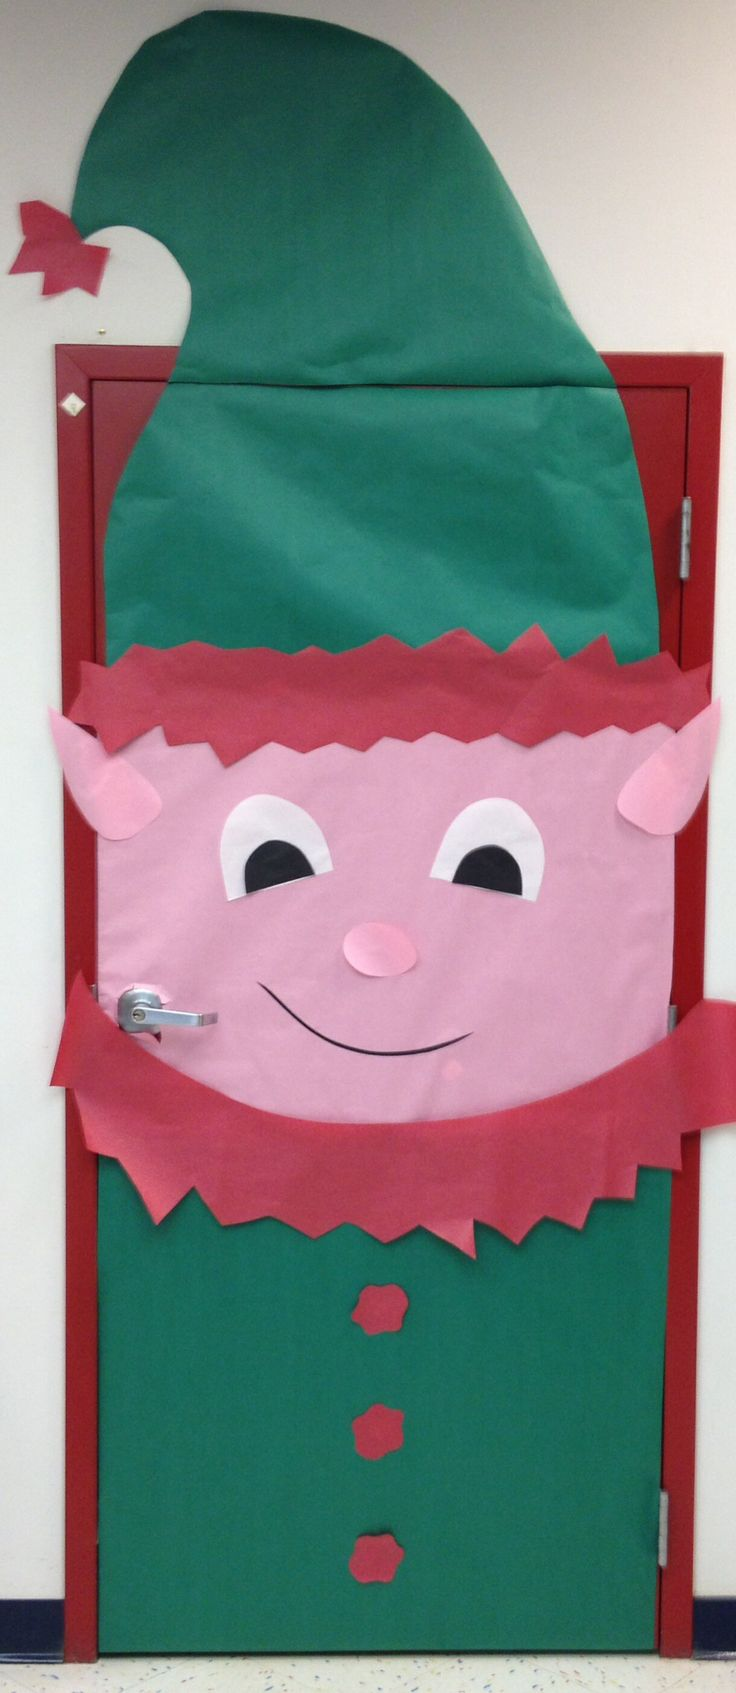 Elf door decoration school art projects pinterest for Elf door decoration